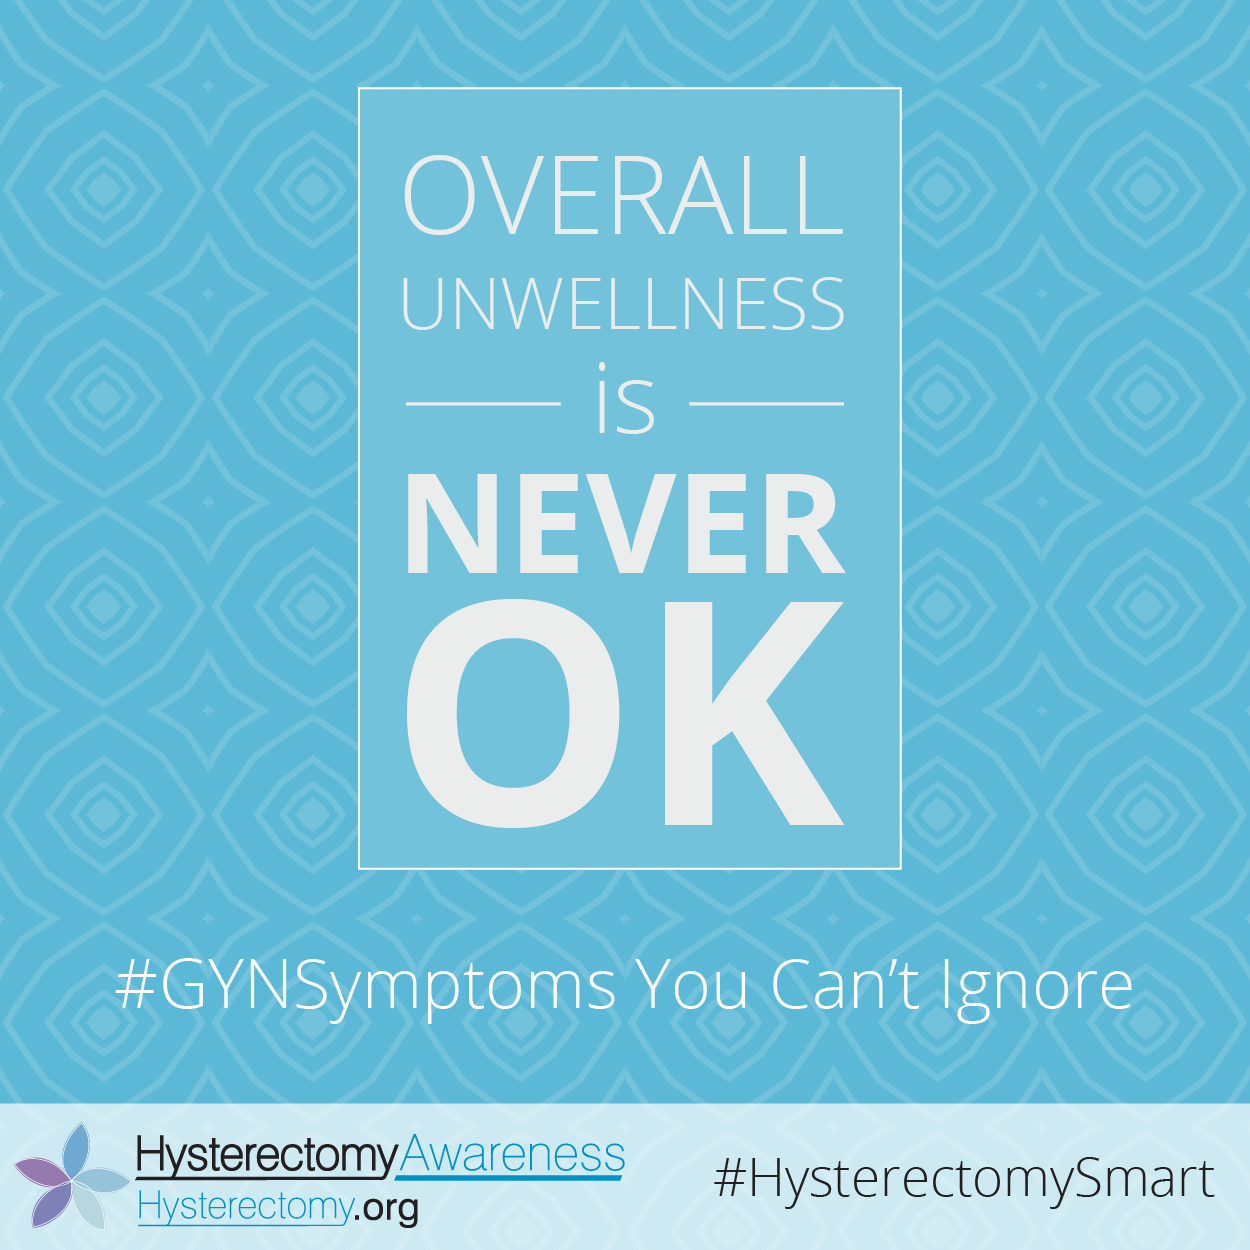 Overall Unwellness is NEVER OK #GYNSymptoms You Can't Ignore #HysterectomySmart